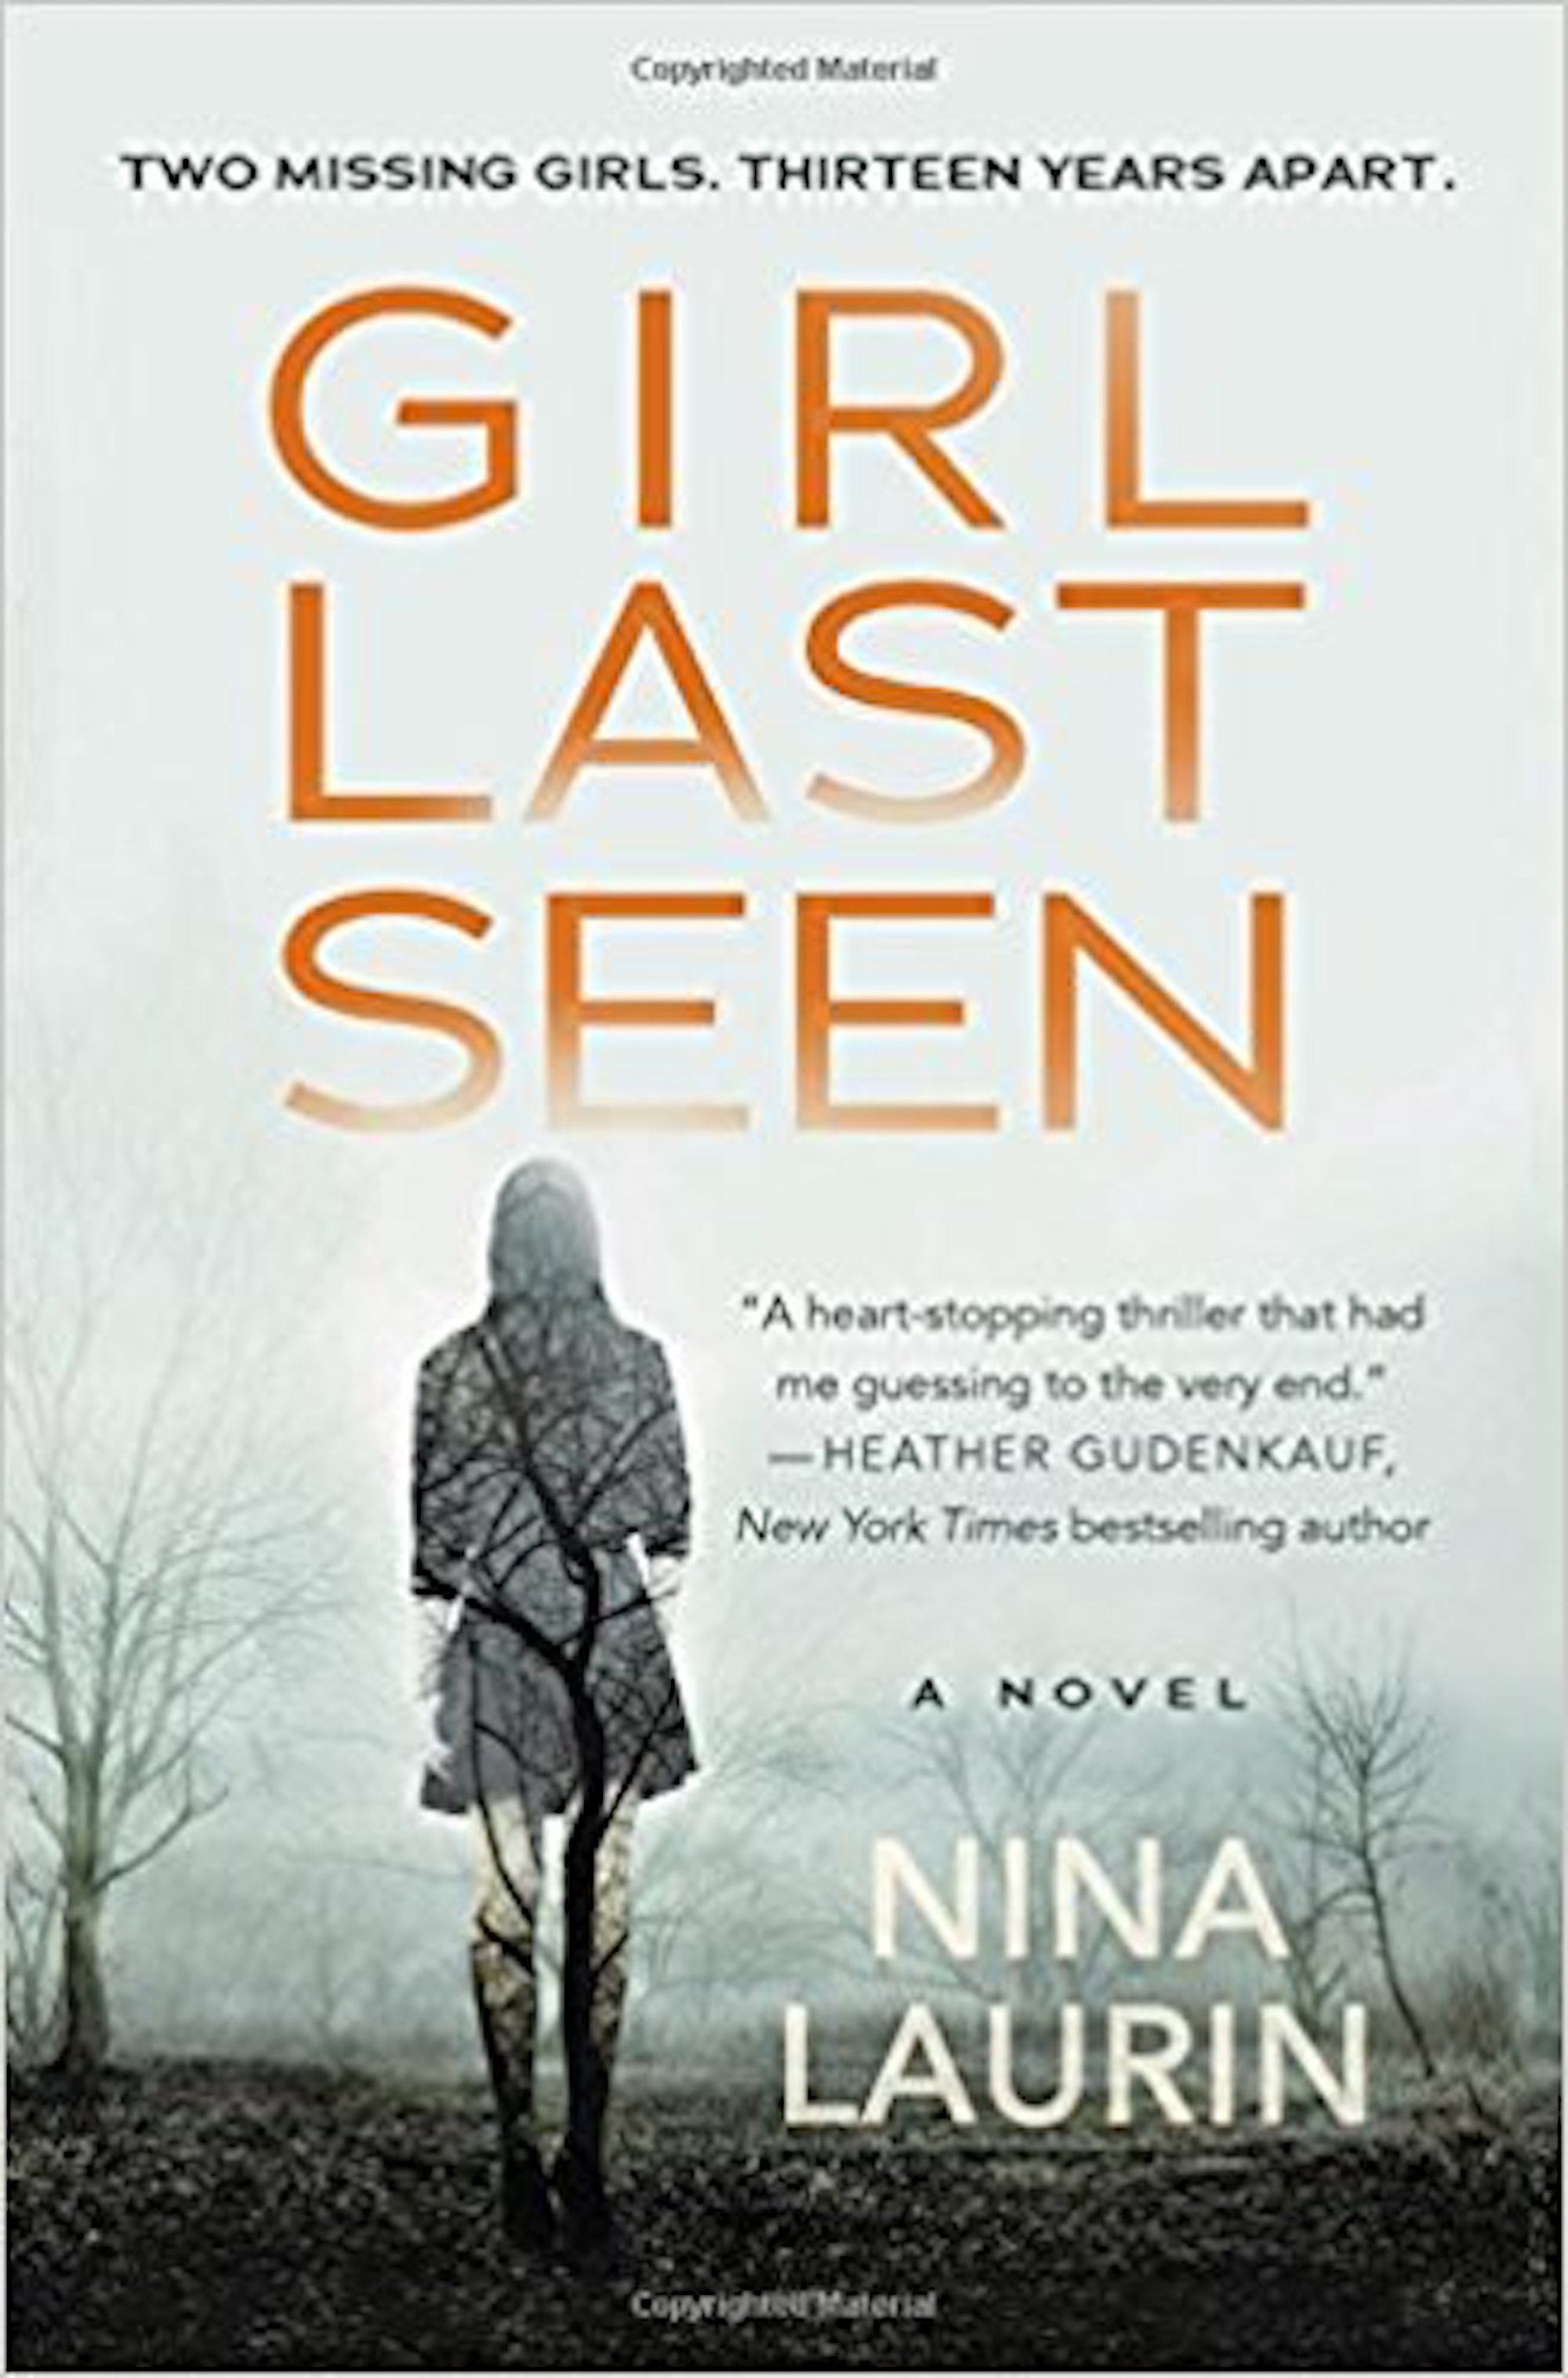 Best Psychological Thrillers - Books Like Gone Girl